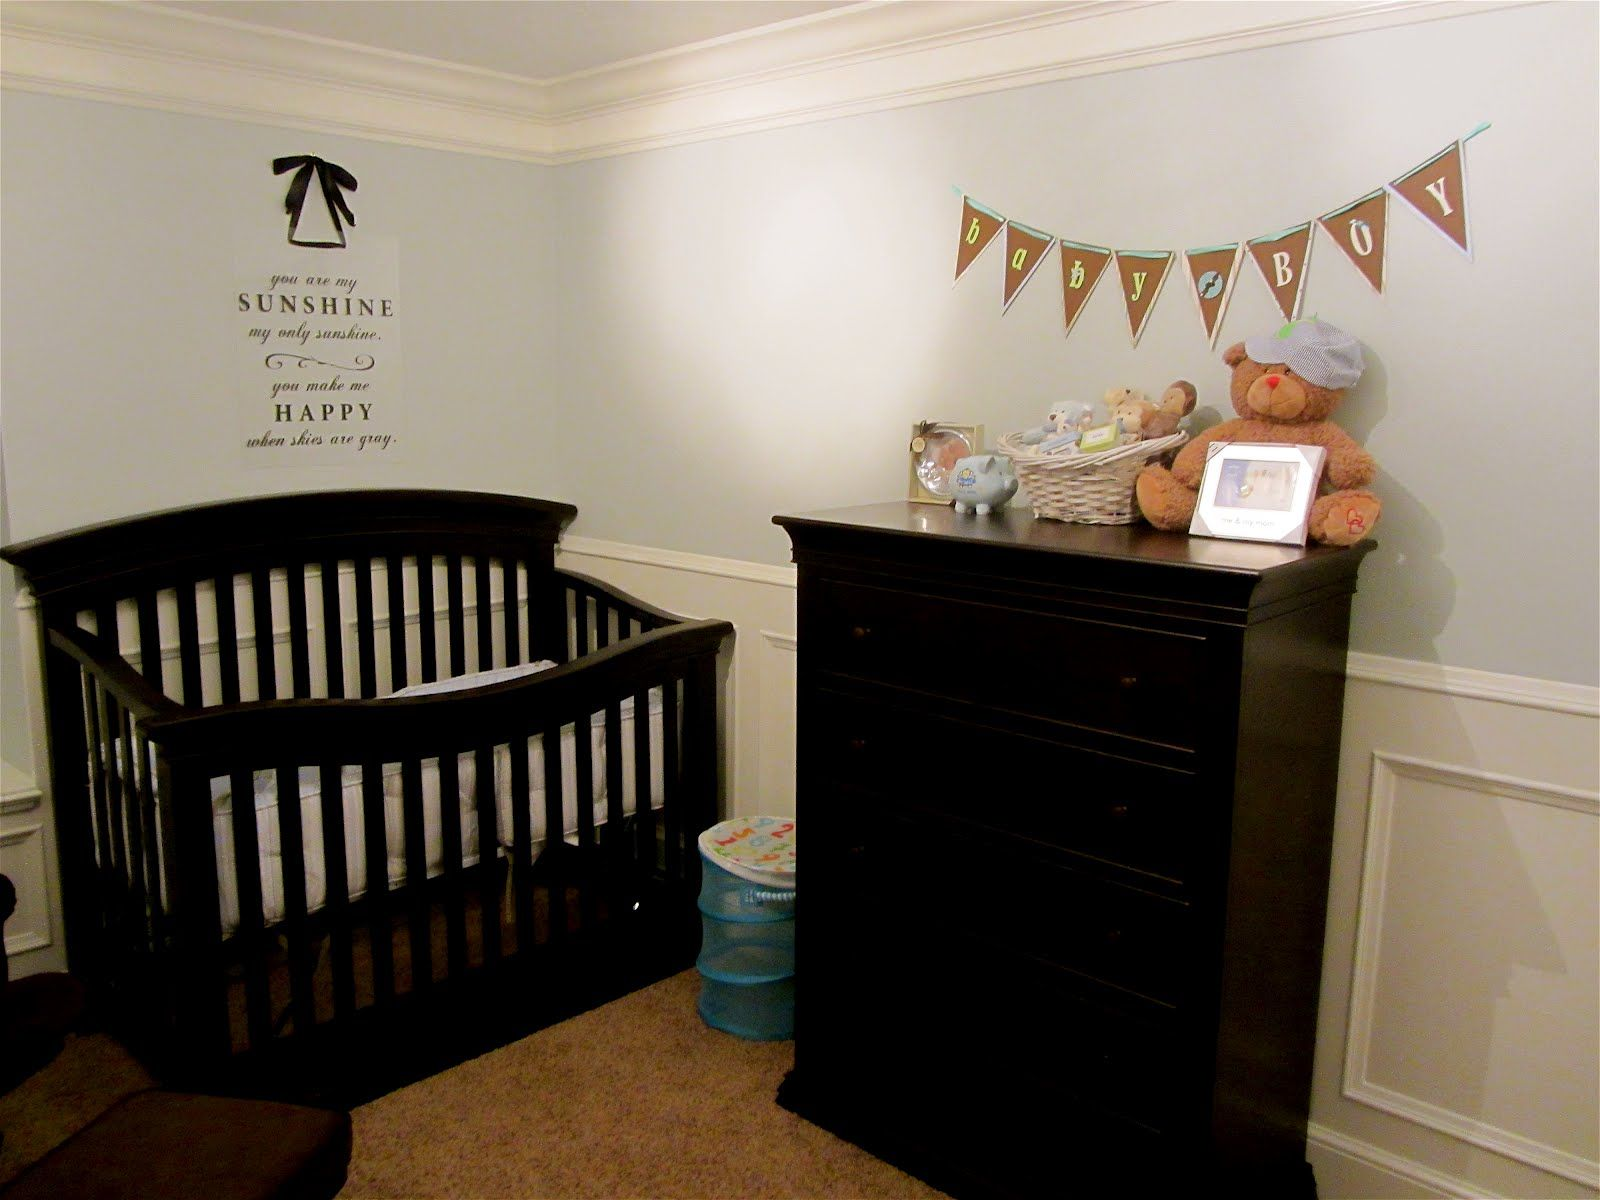 Our baby nursery: My husband did the finish carpentry/wainscoting. I got the label for the song on Amazon. http://jessicafaulkner.blogspot.com/